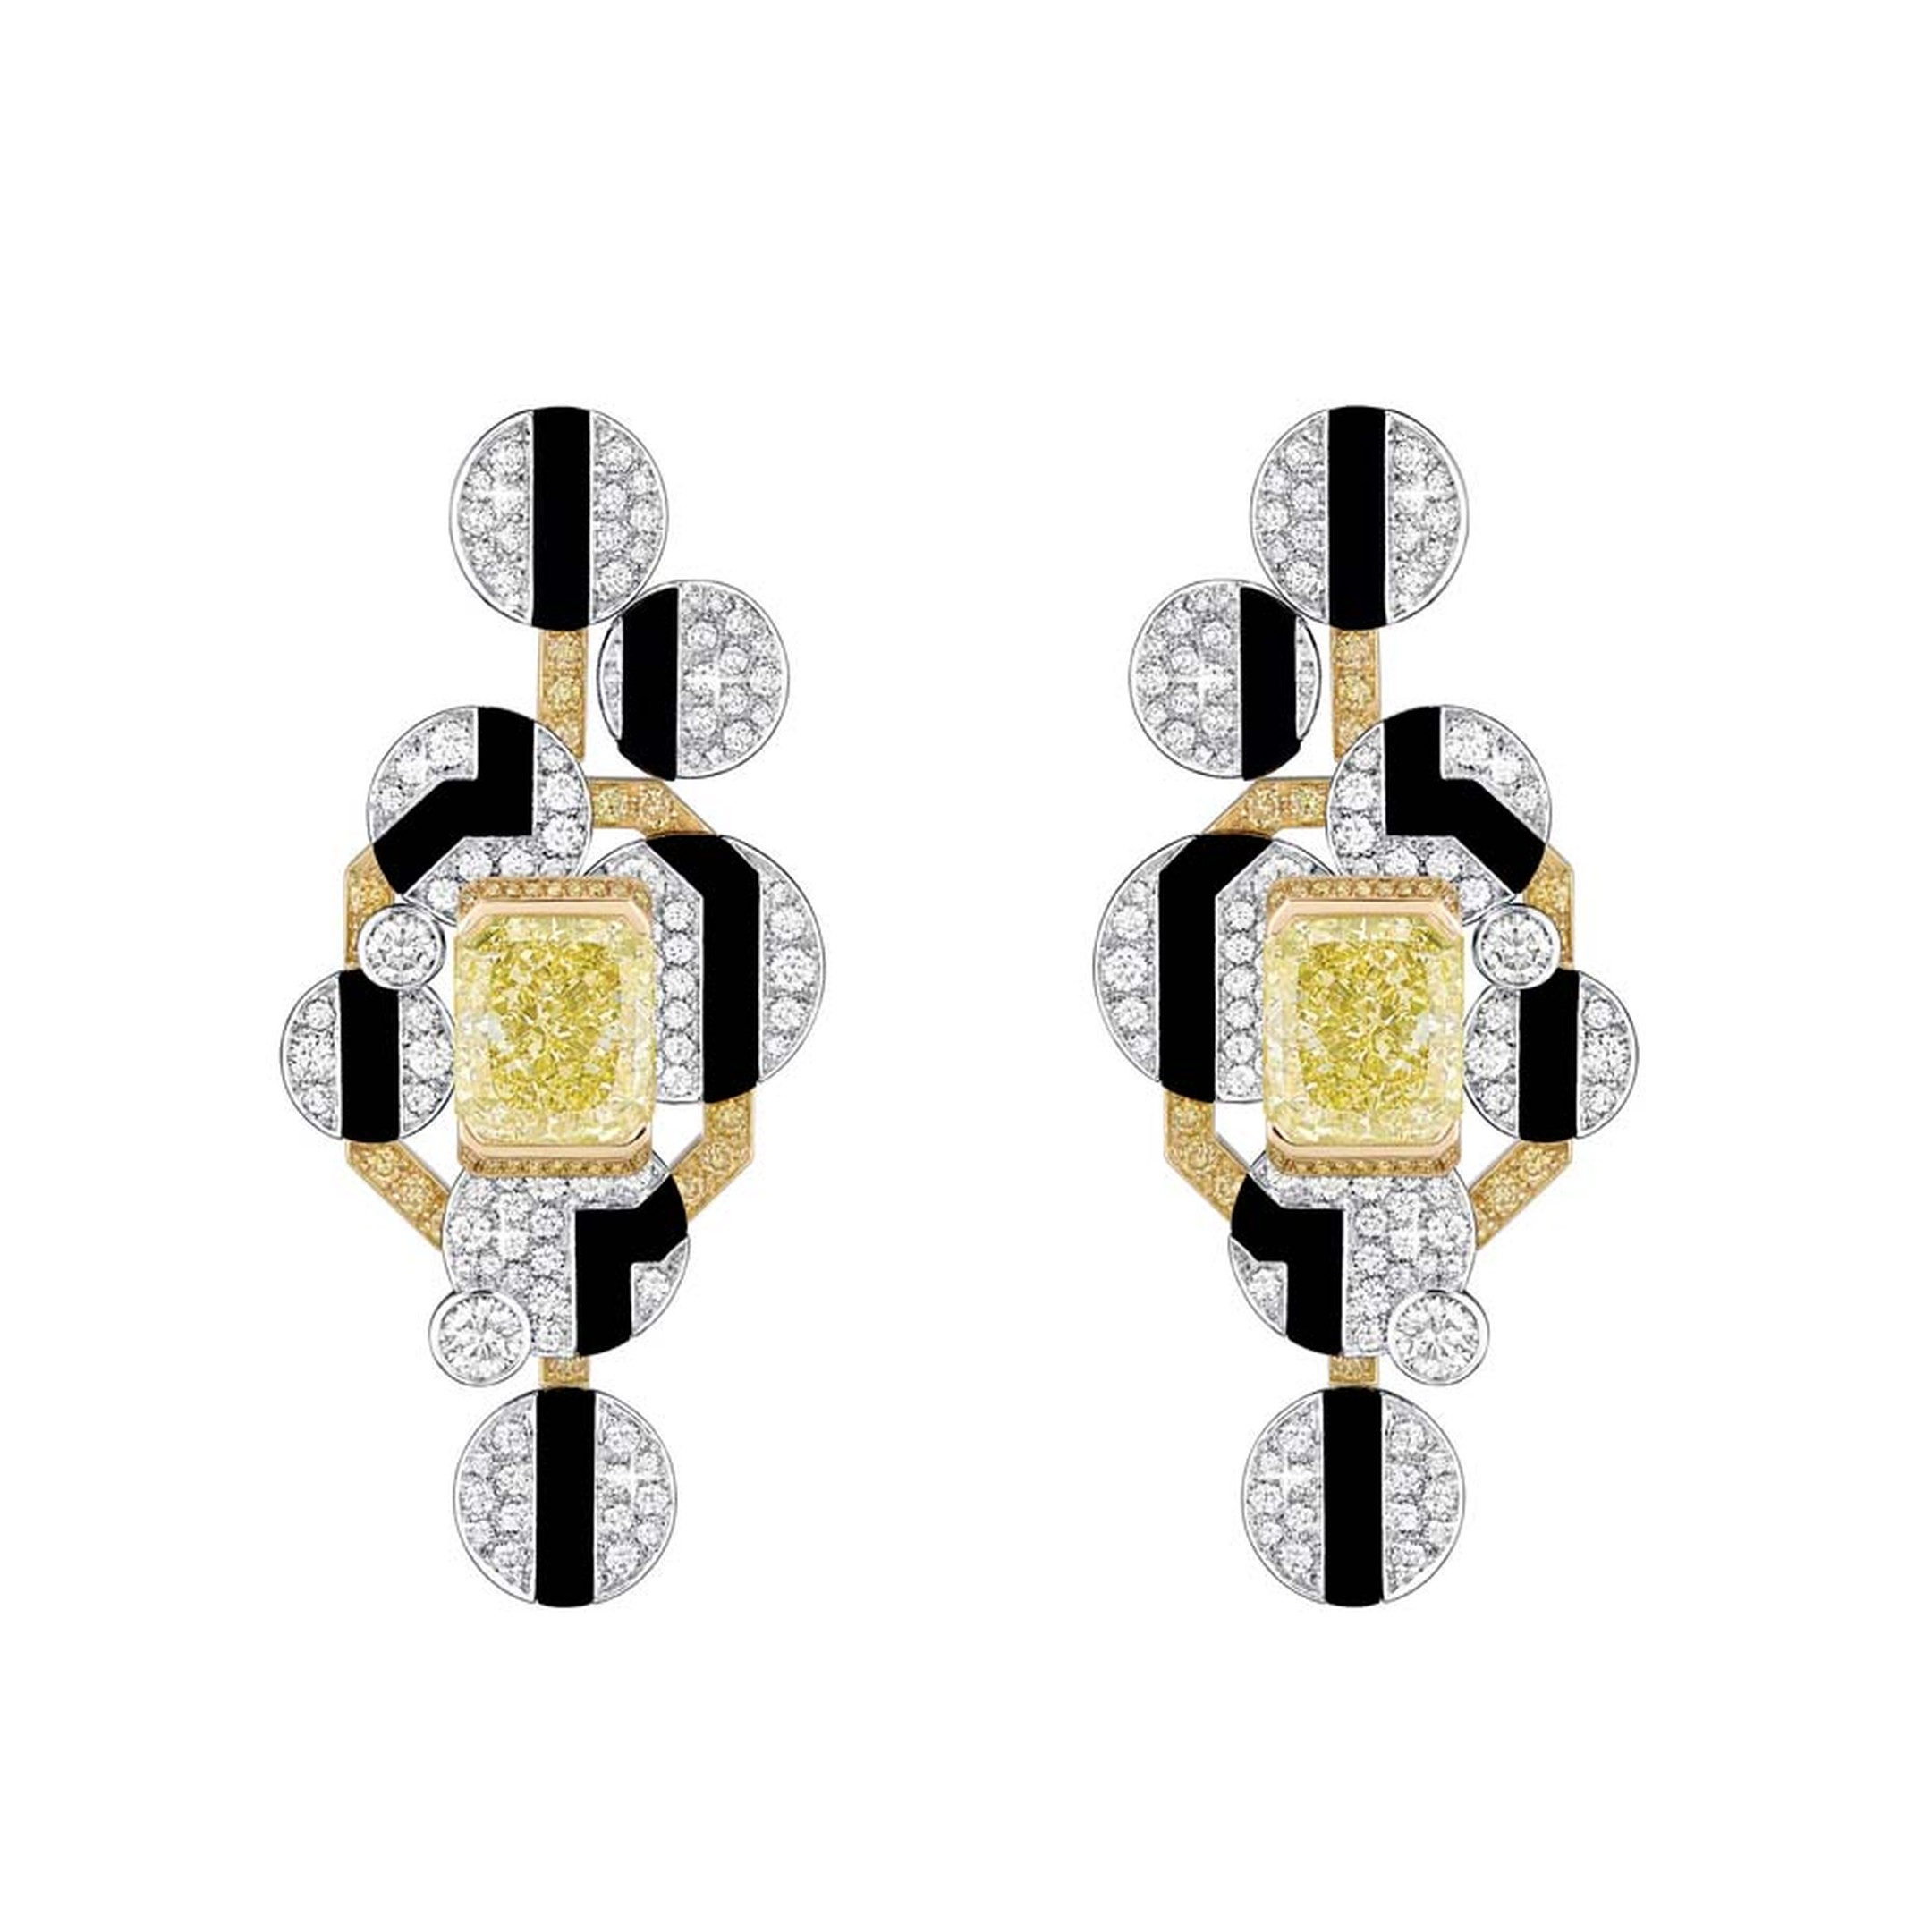 Combining the clean lines of avant-garde geometry with mesmerising mosaics of colour, Chanel's Café Society Morning in Vendome earrings feature circles of brillliant-cut white and yellow diamonds and two emerald-cut yellow diamonds.